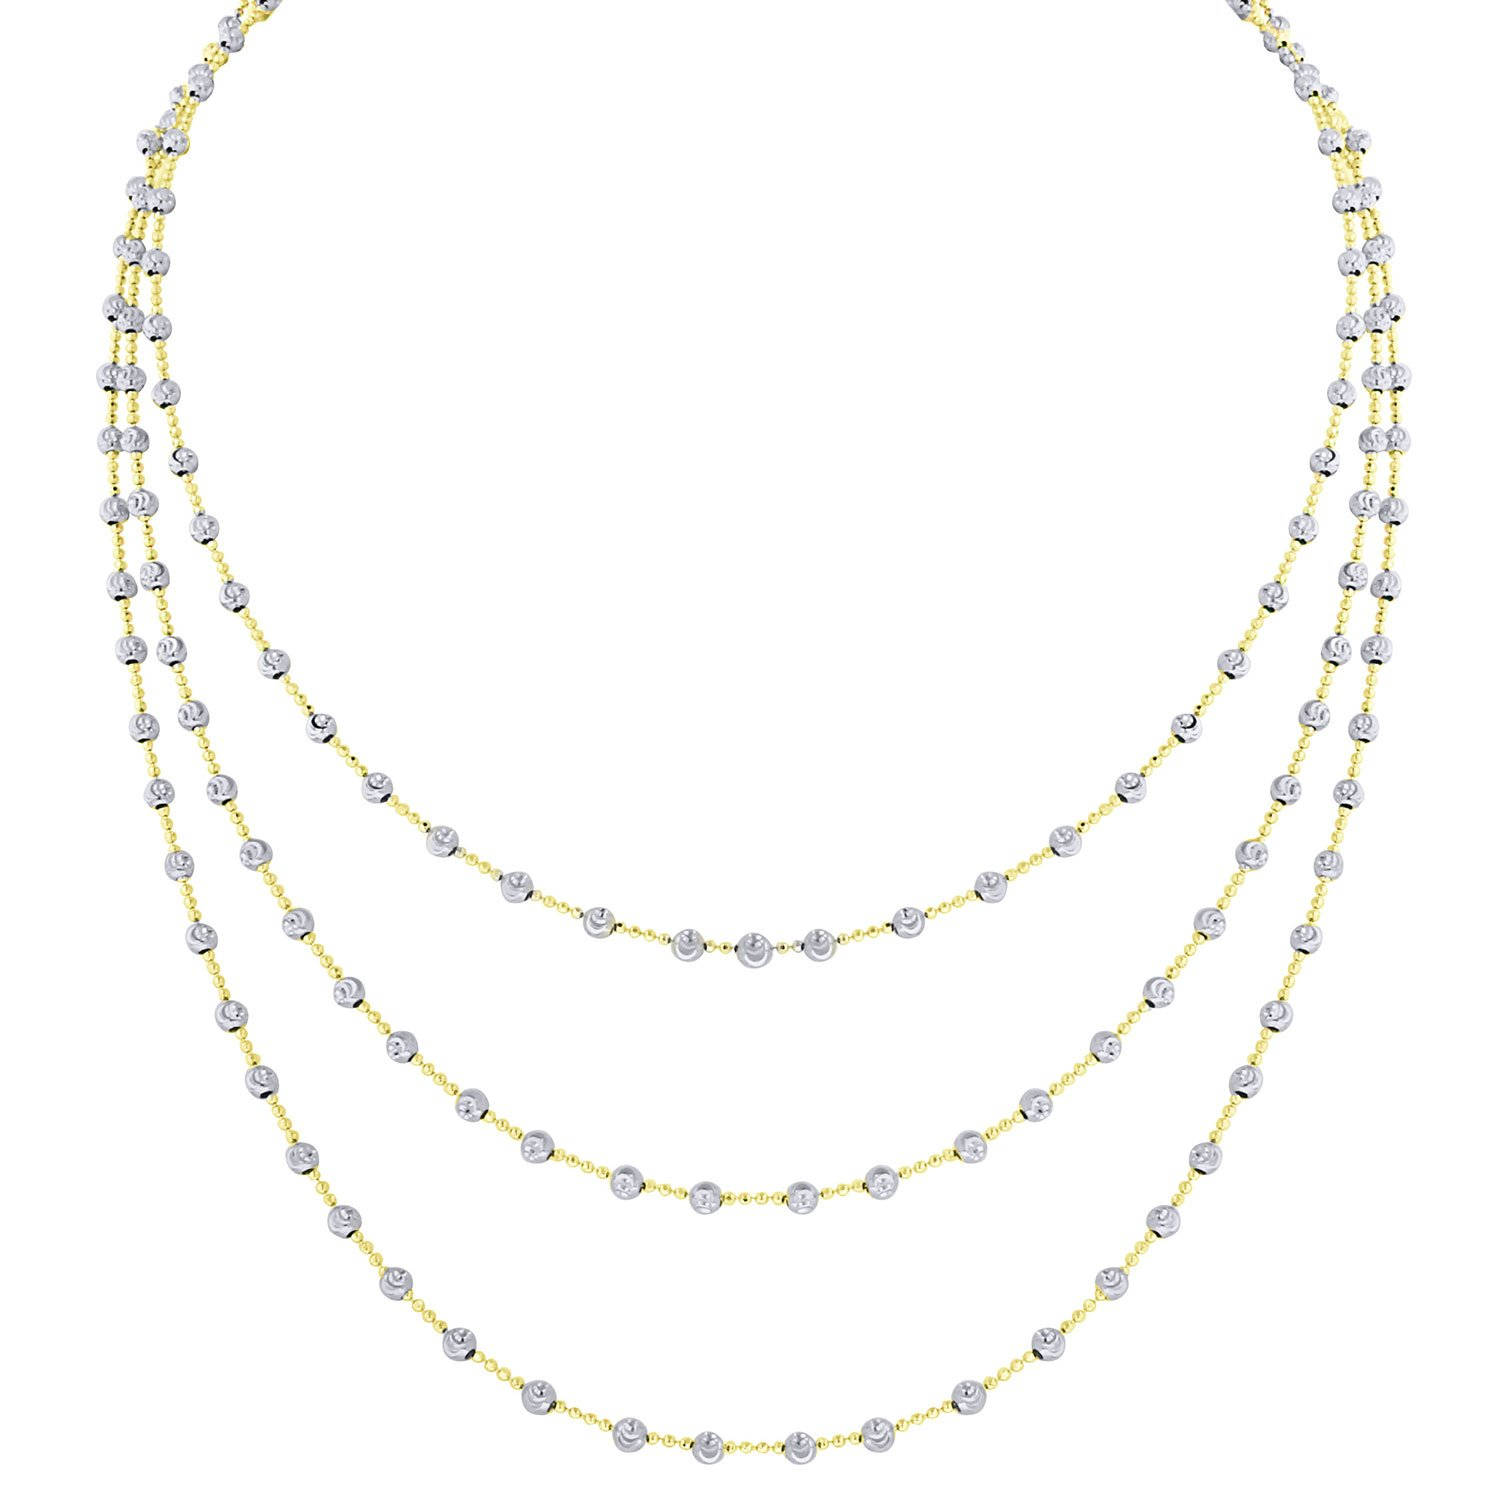 Officina Bernardi Sterling Silver 3 Row Station Necklace, 16'' with 2'' Extender (Yellow)